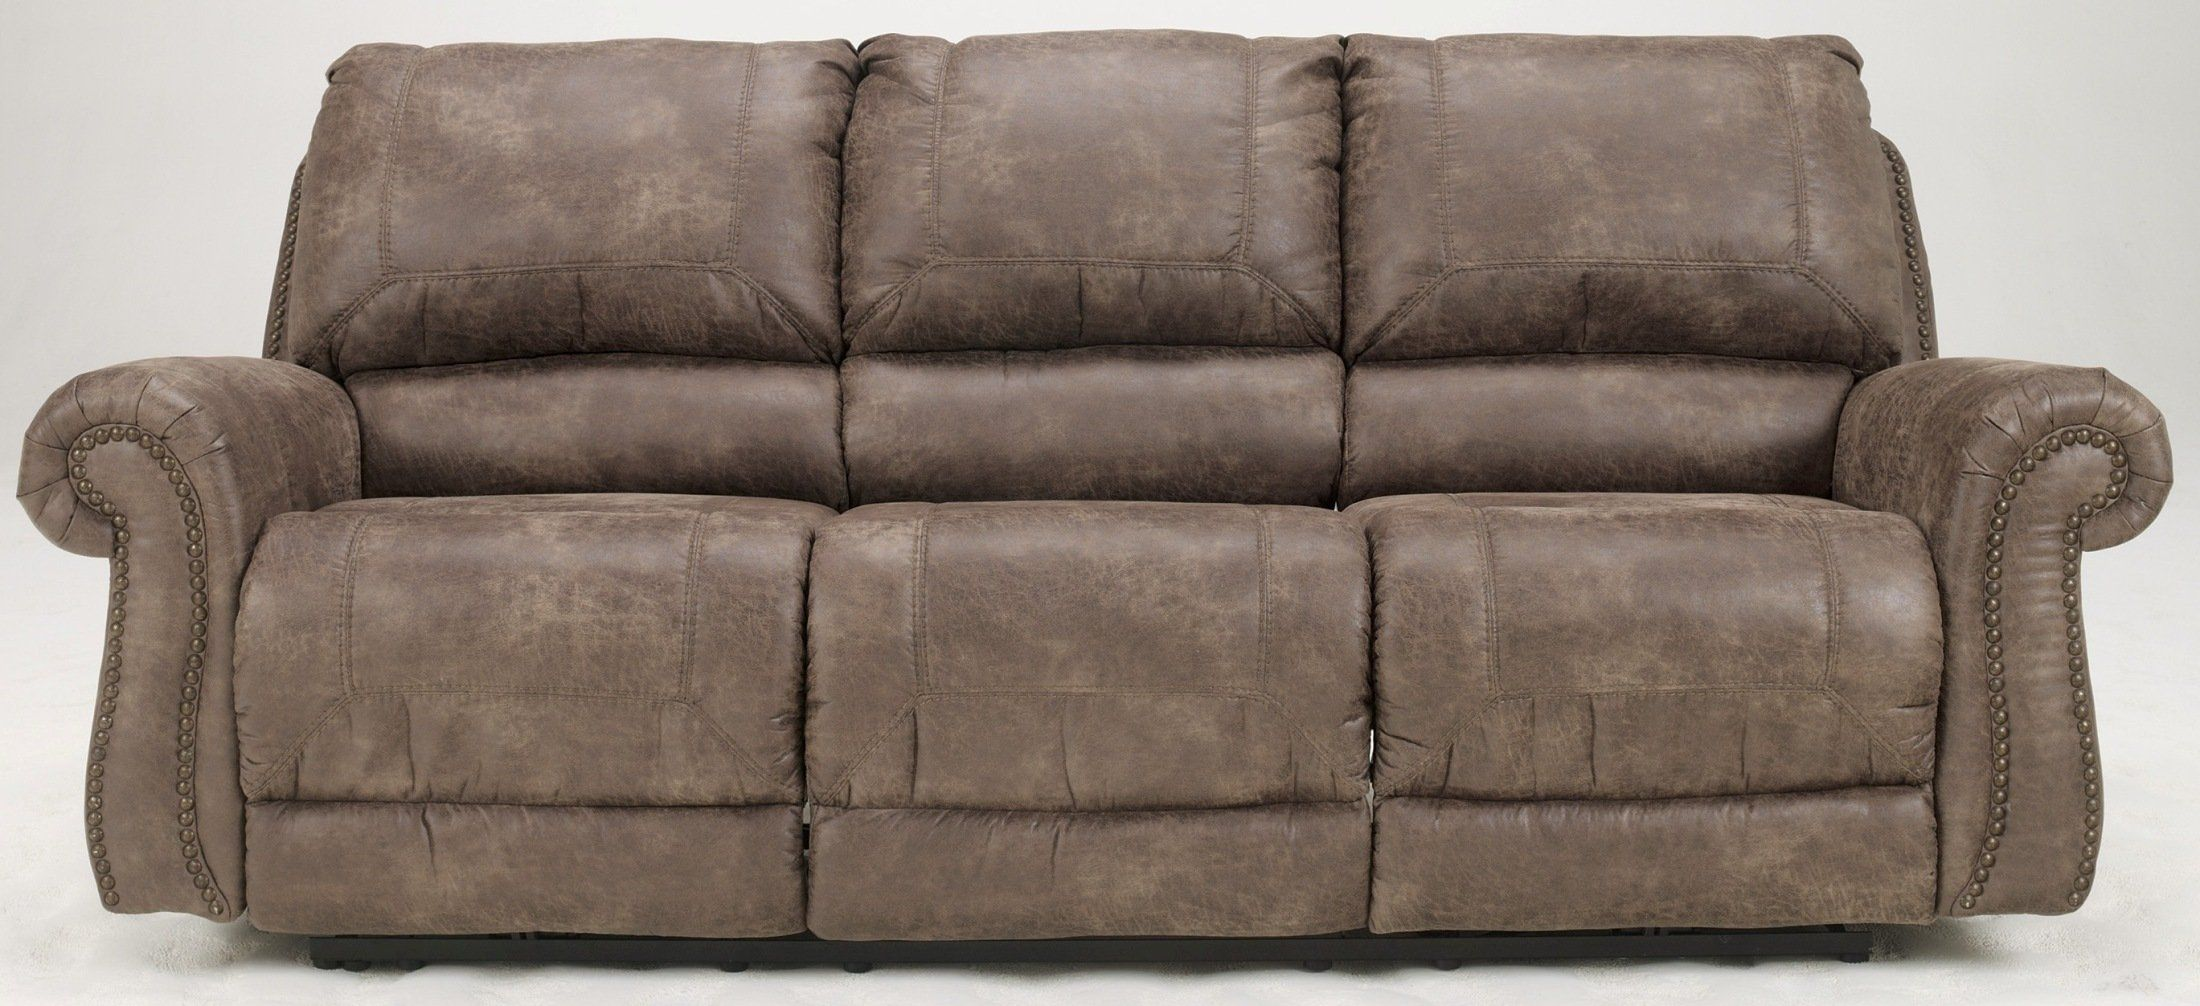 Oberson Reclining Sofa Manual Recline Purchased From Ashley